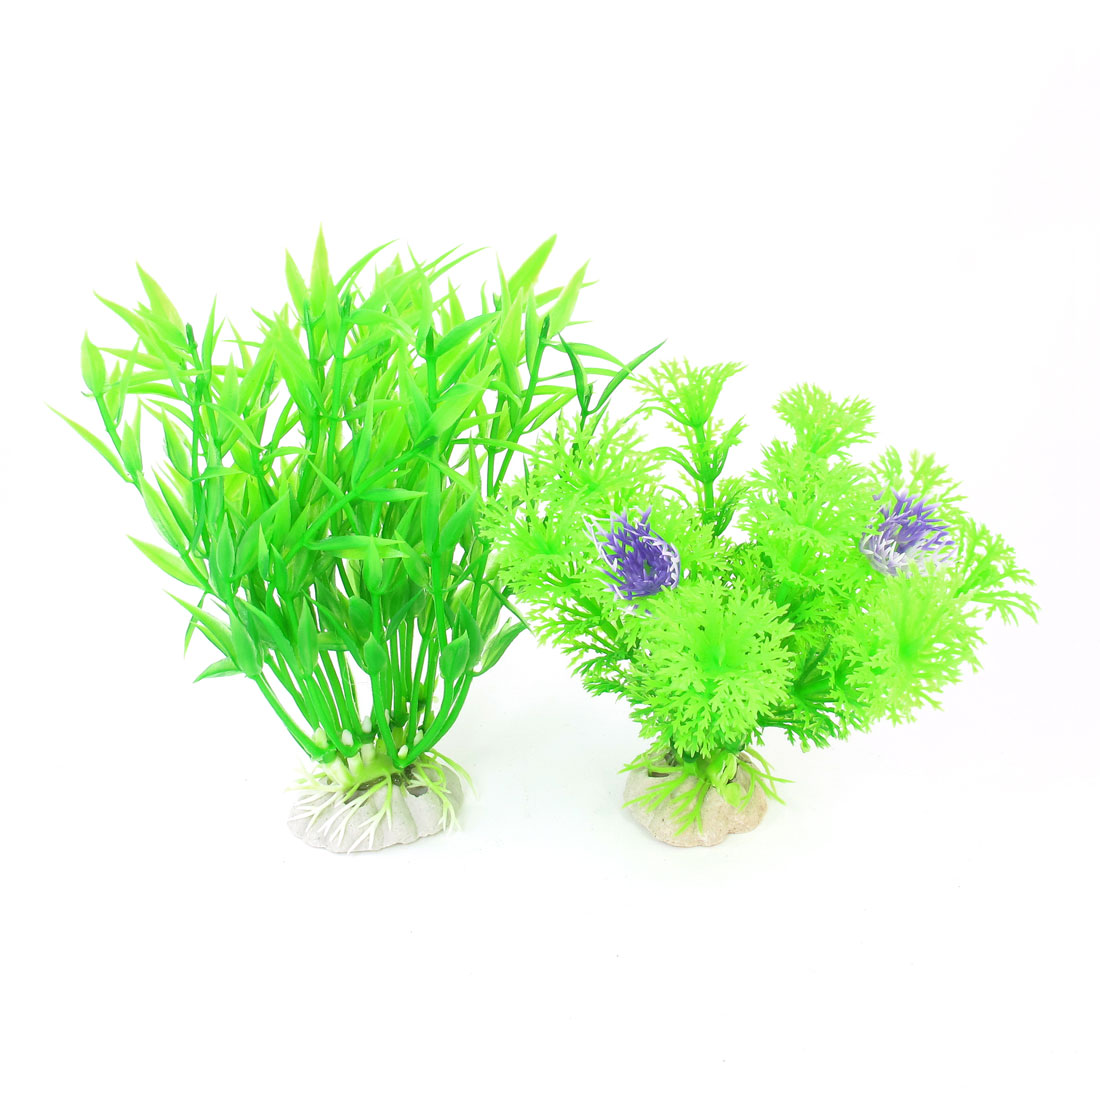 2 Pcs Green Emulational Fish Tank Aquarium Grass Plants Ornament